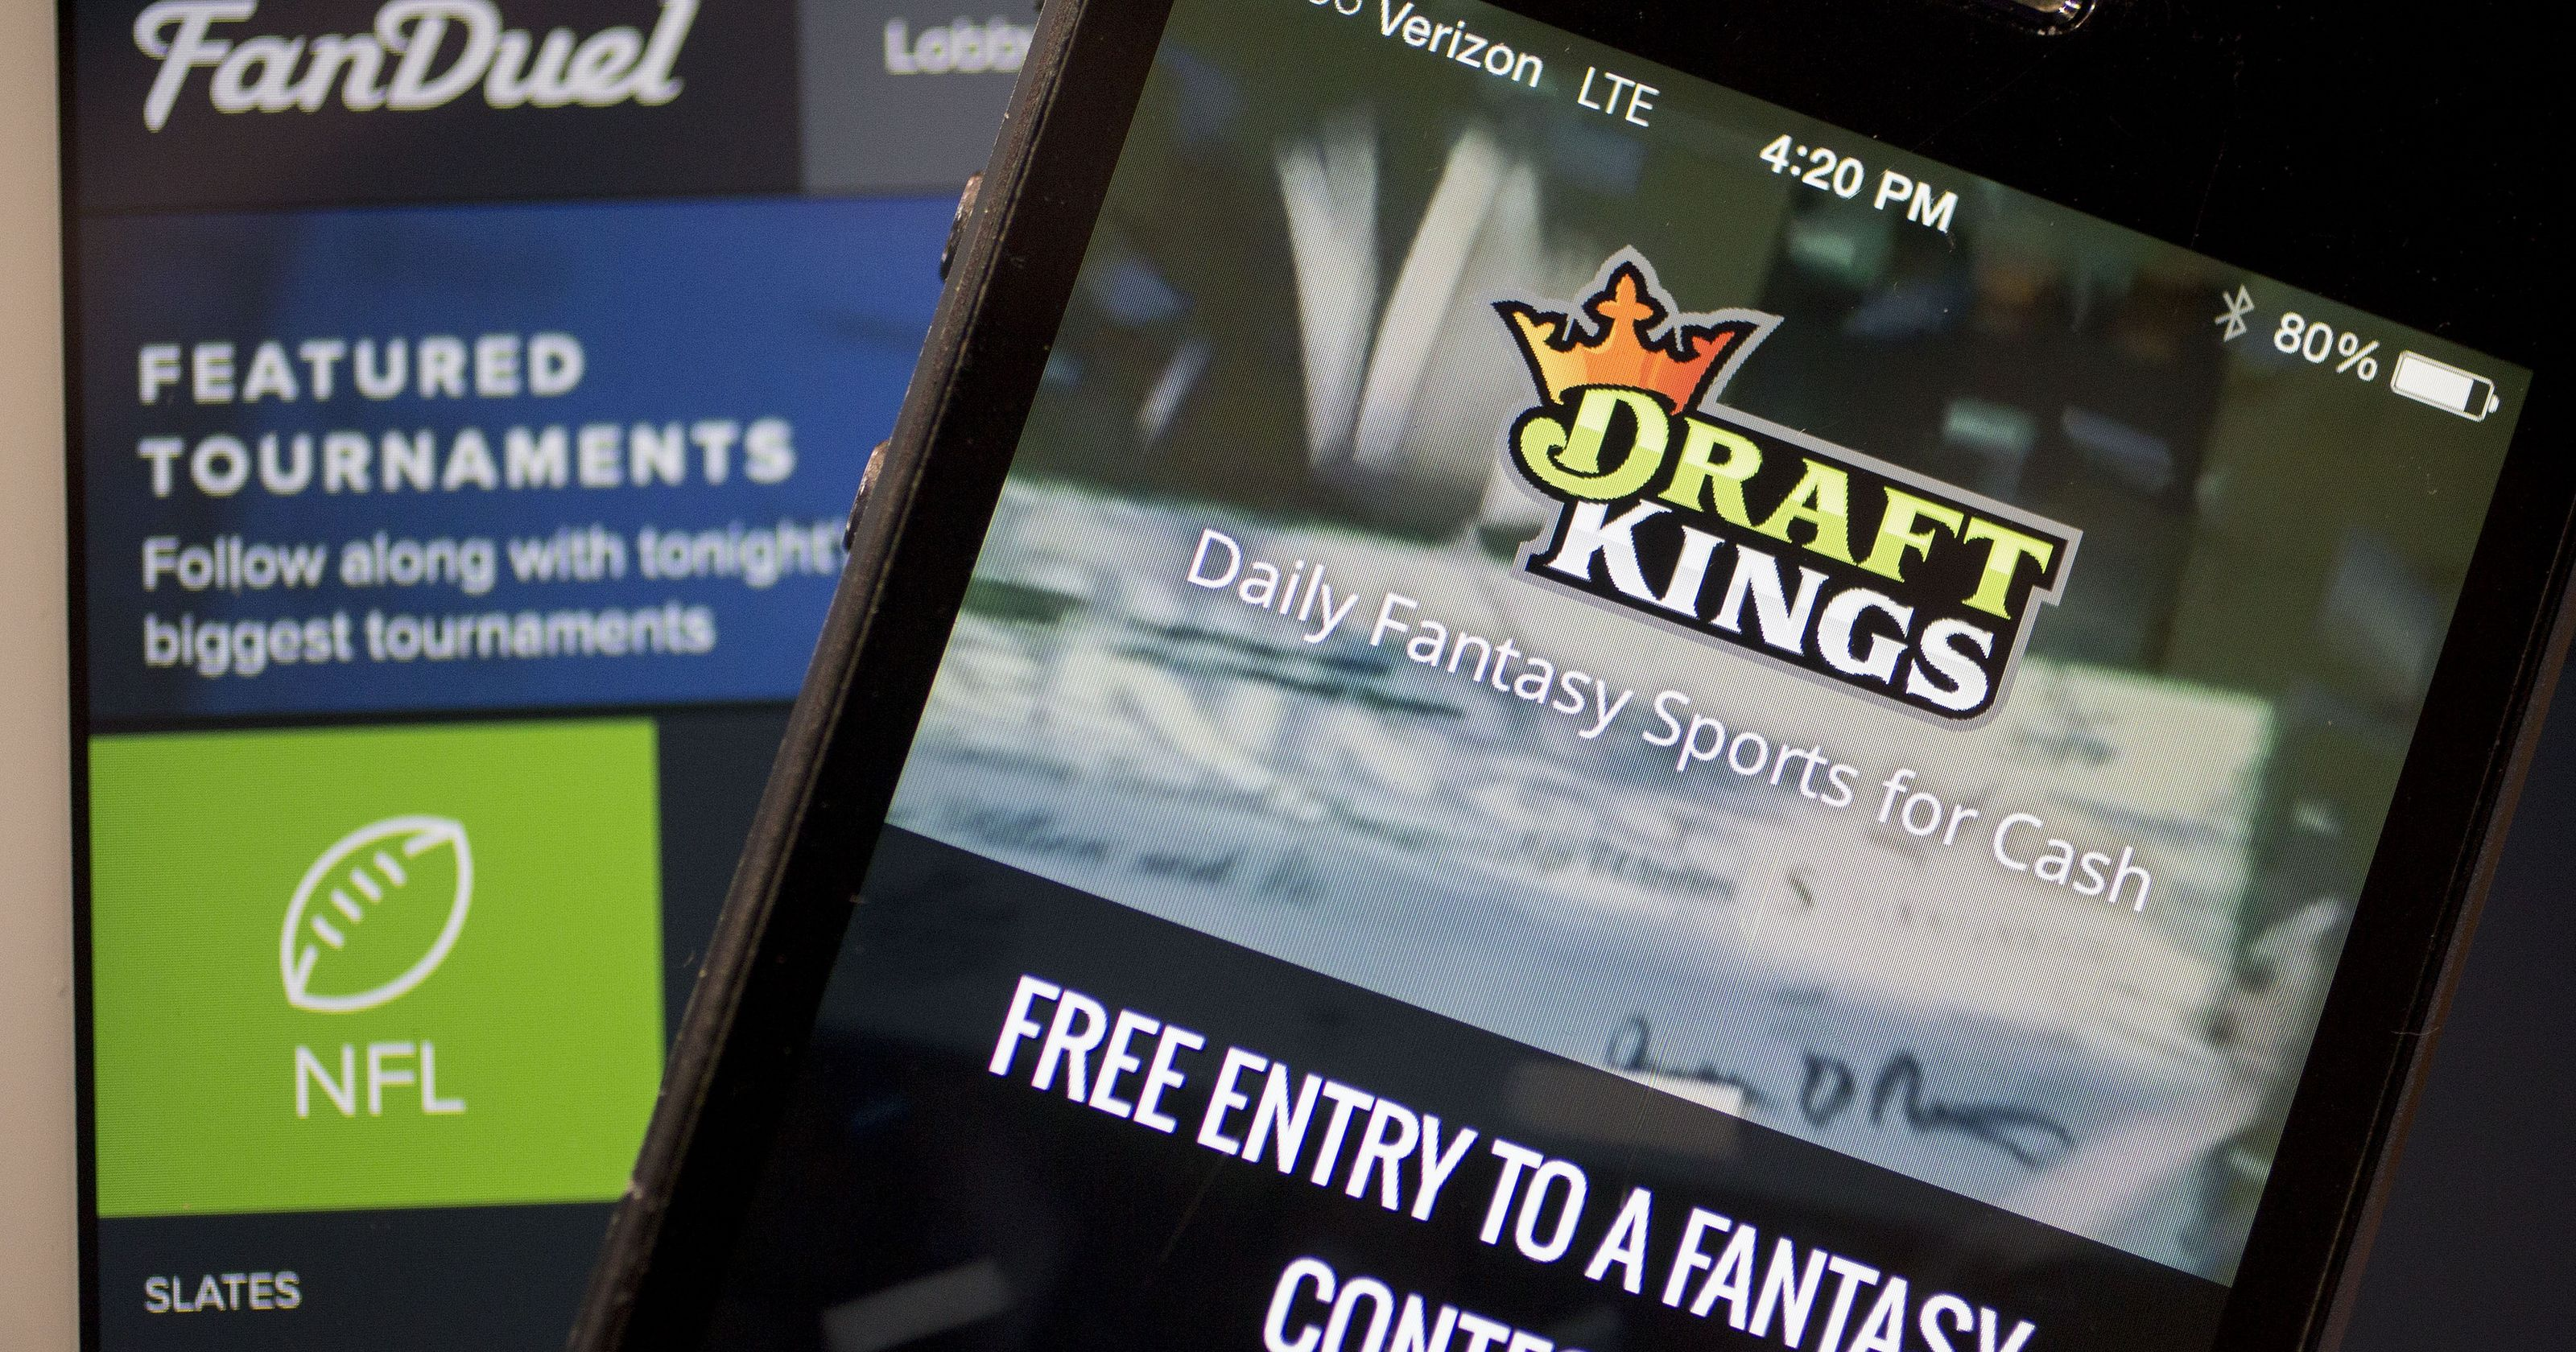 DraftKings and FanDuel Nevada Gaming Policy Committee